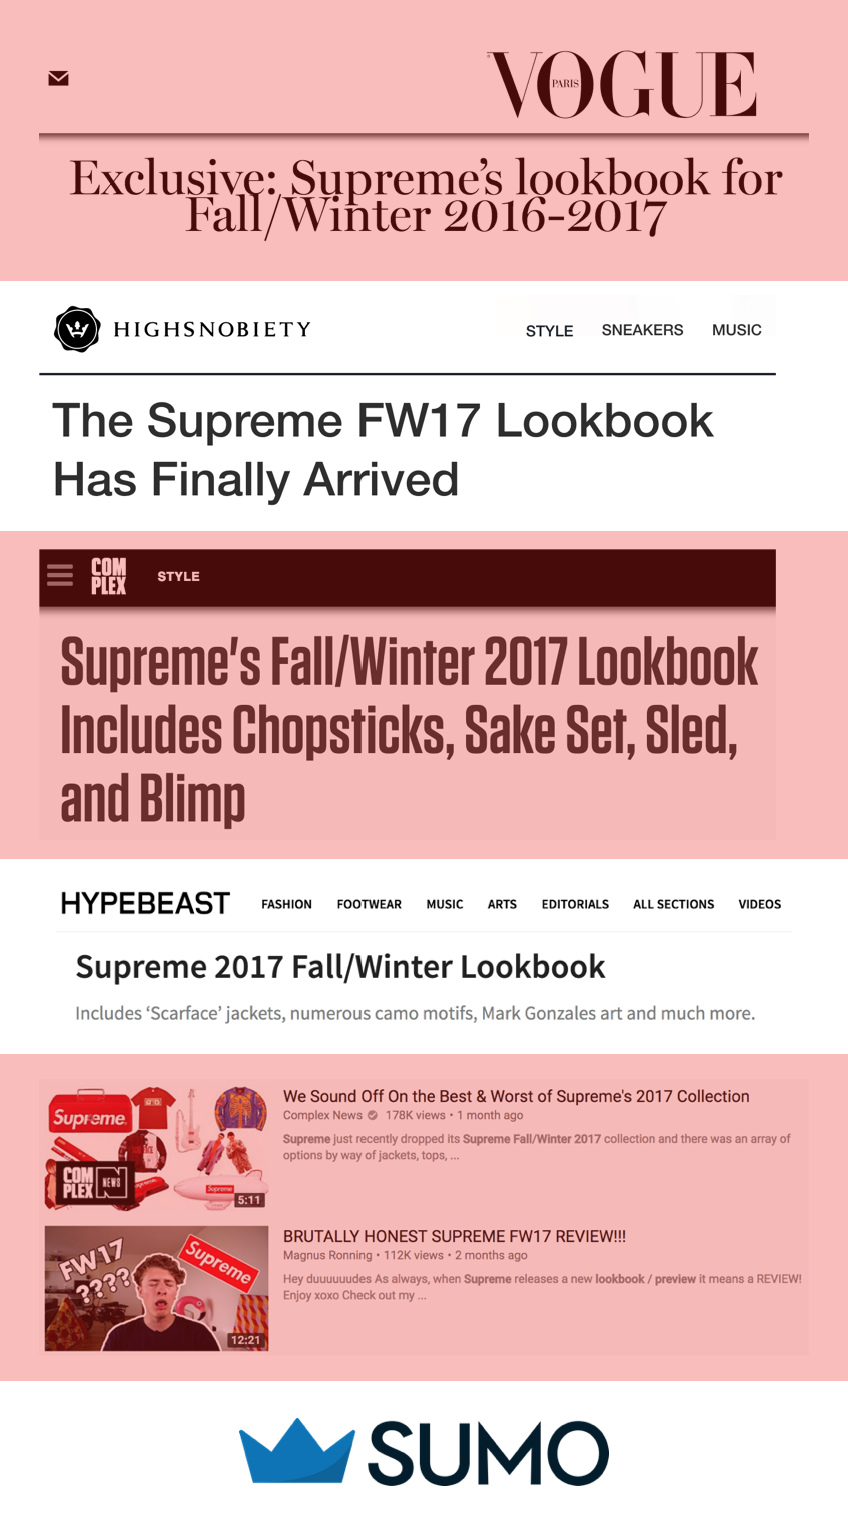 Screenshot showing news outlets covering the new Supreme lookbook